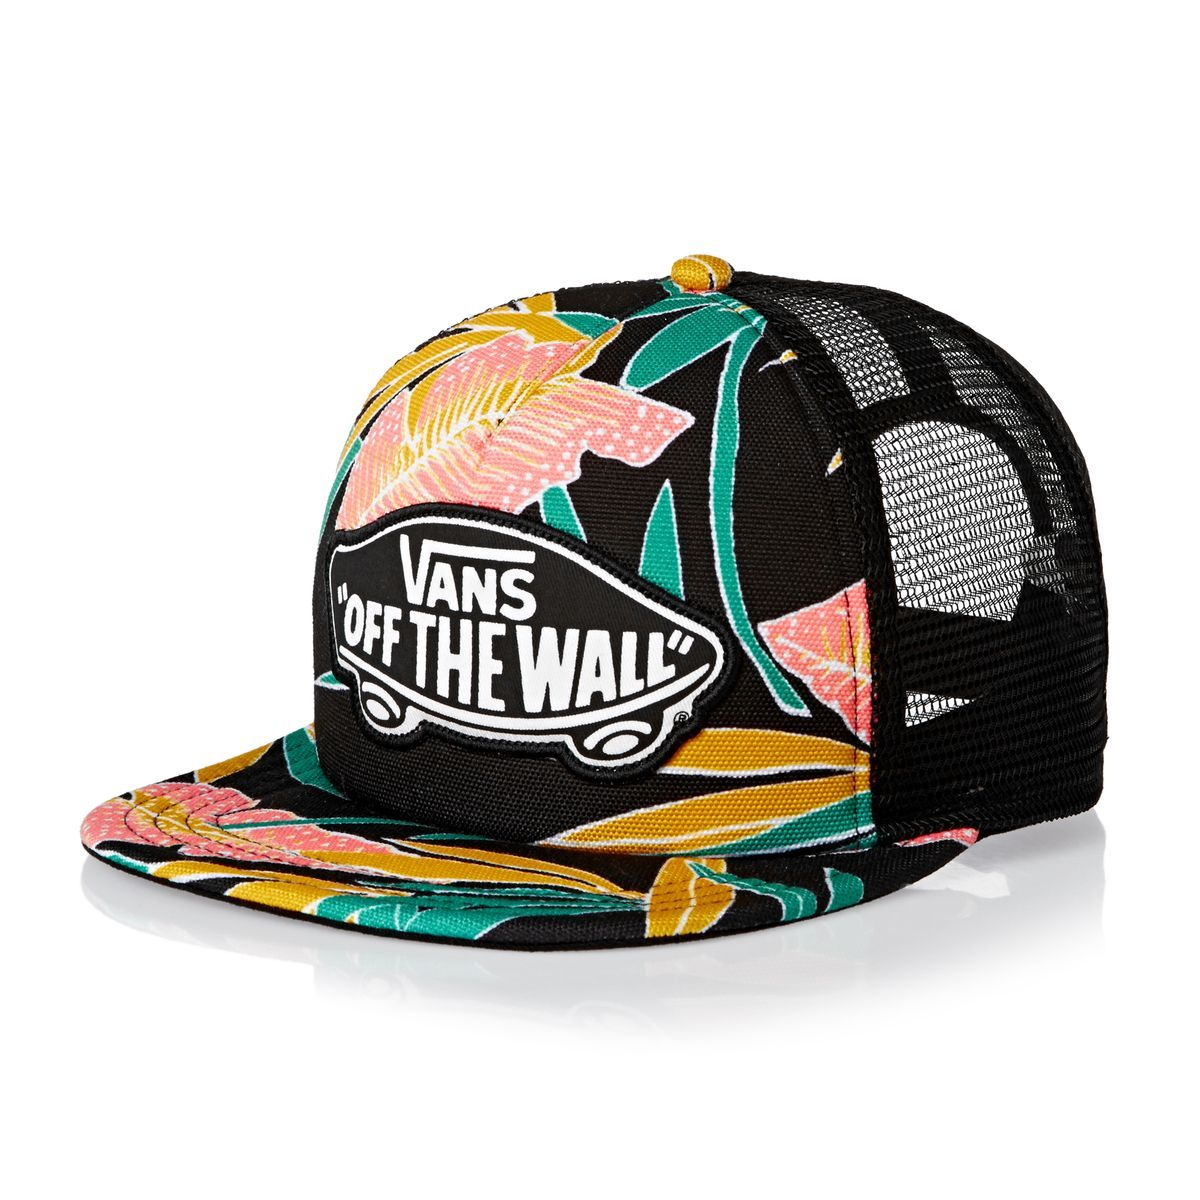 a707e936faffa Vans Beach Girl Trucker Cap - Black Tropical